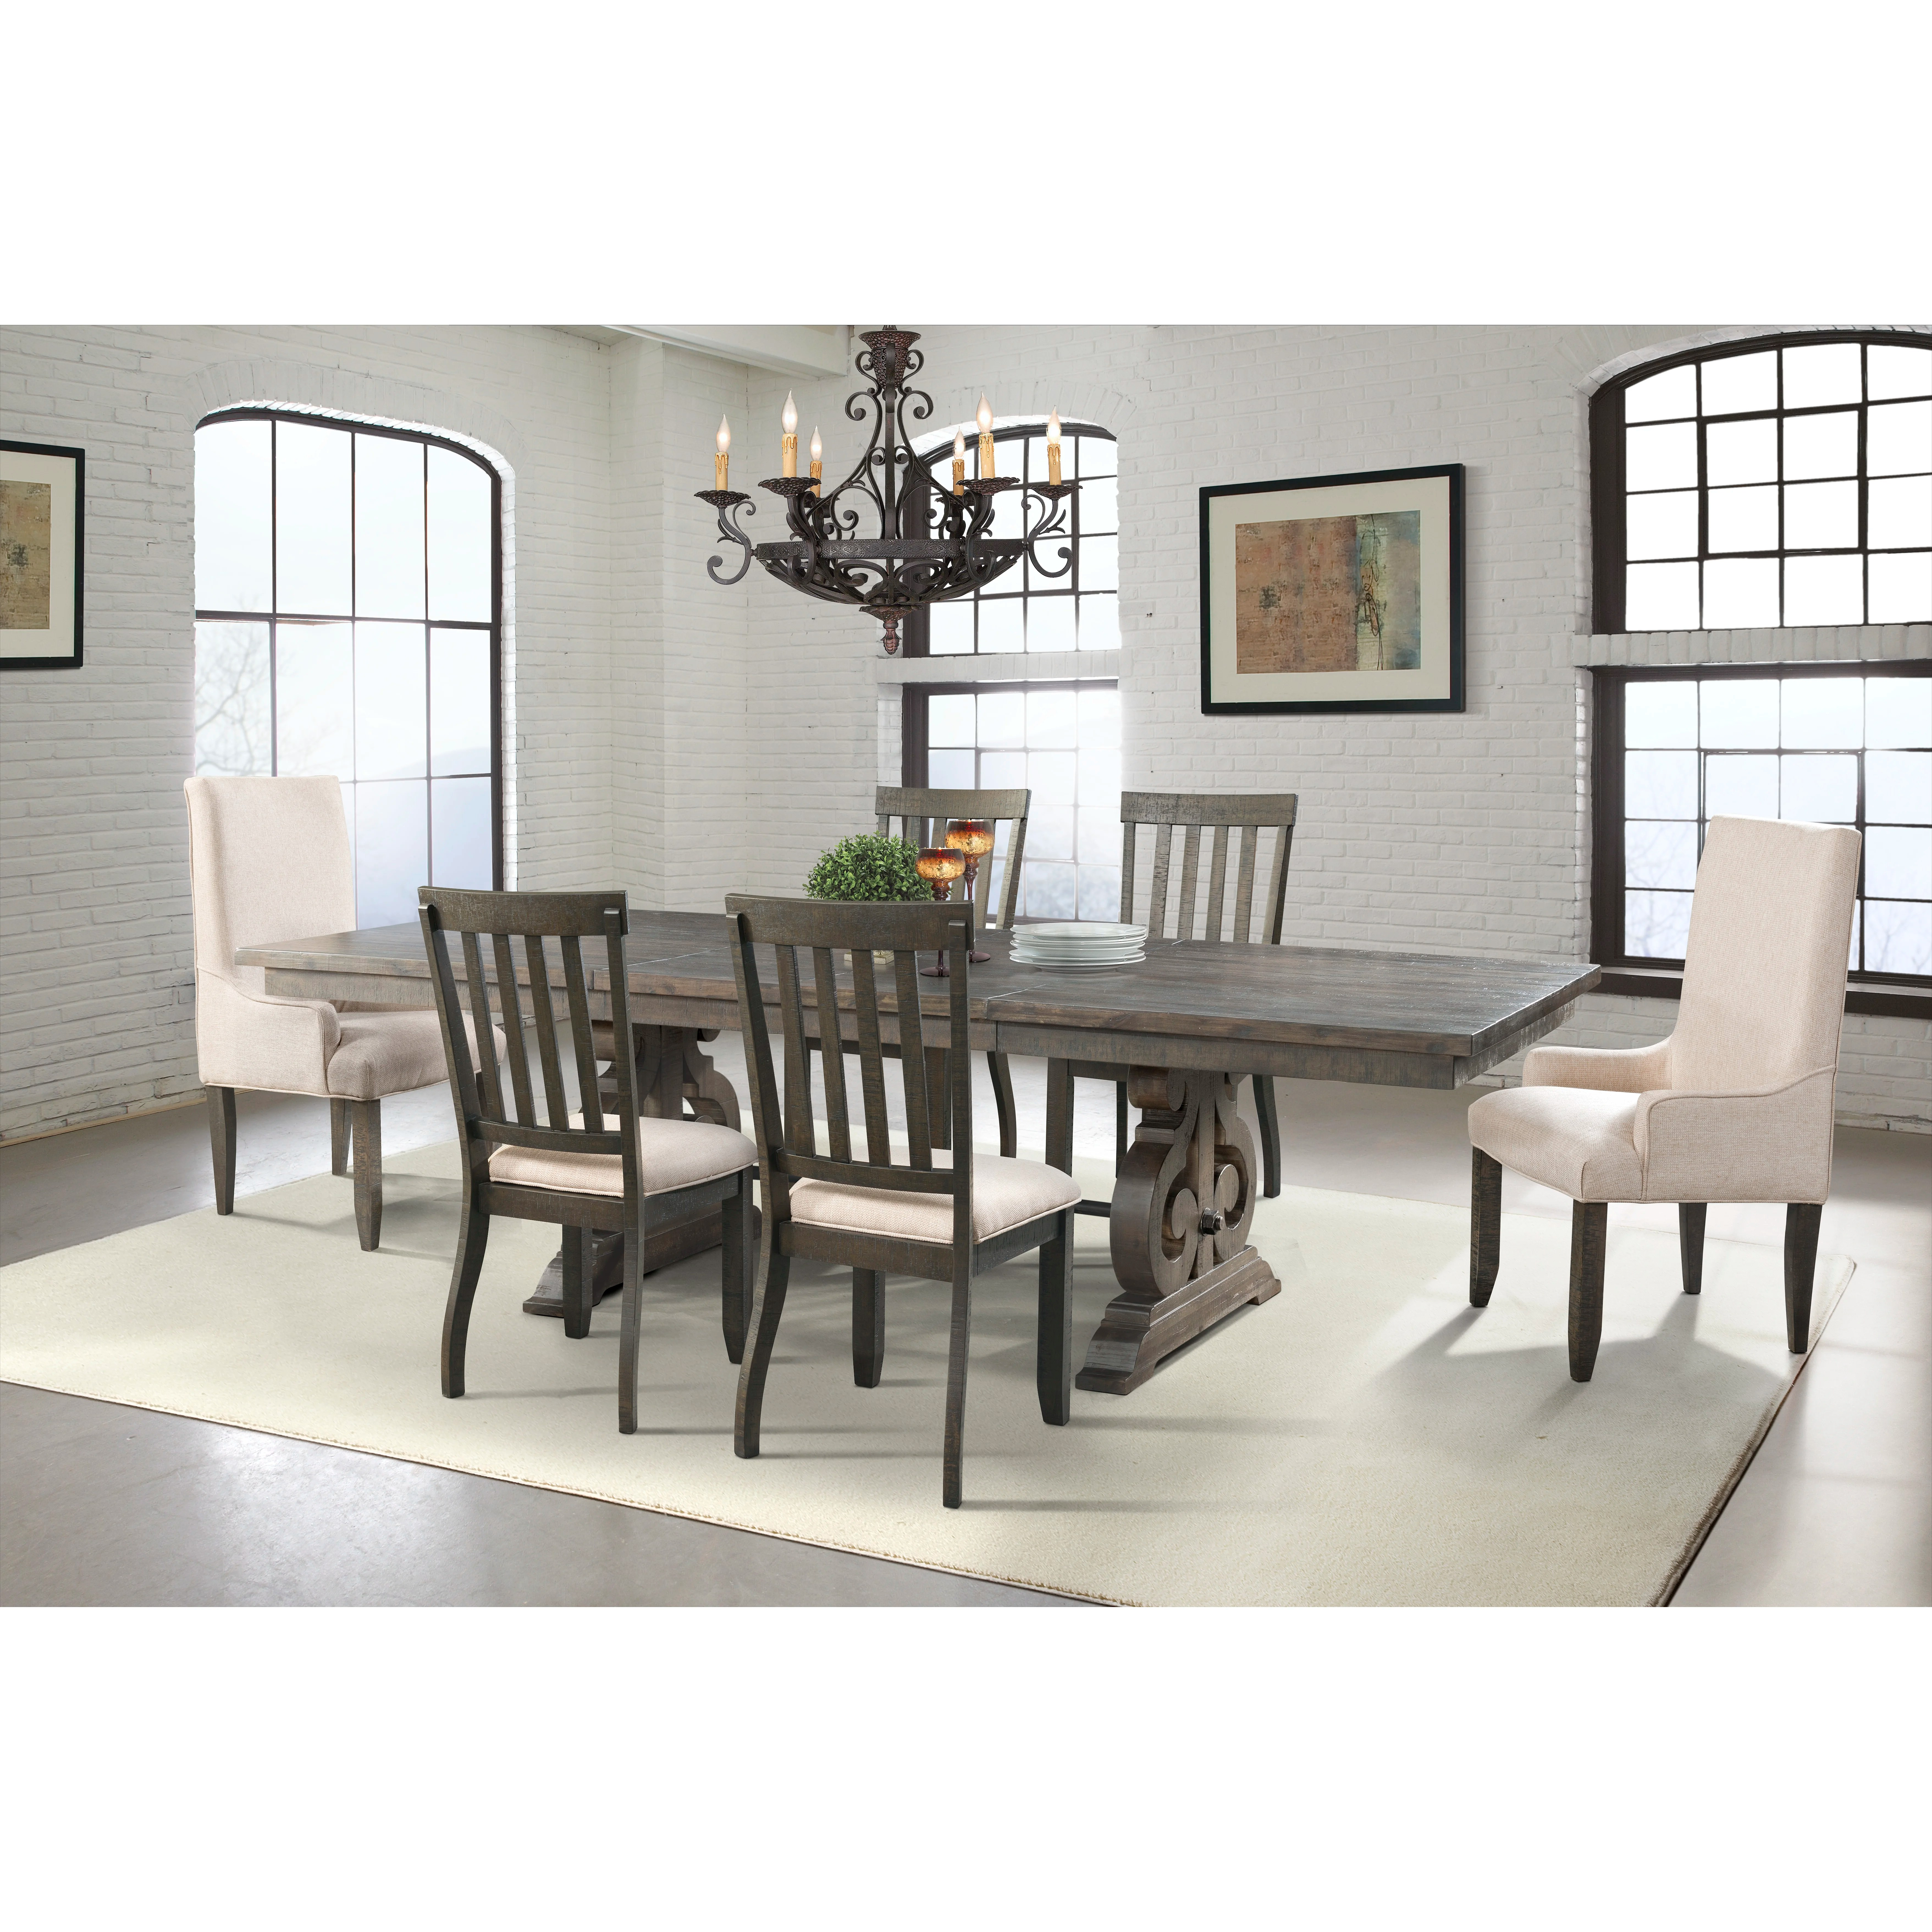 grey kitchen dining tables c a~ gray kitchen table QUICK VIEW Phair Dining Table